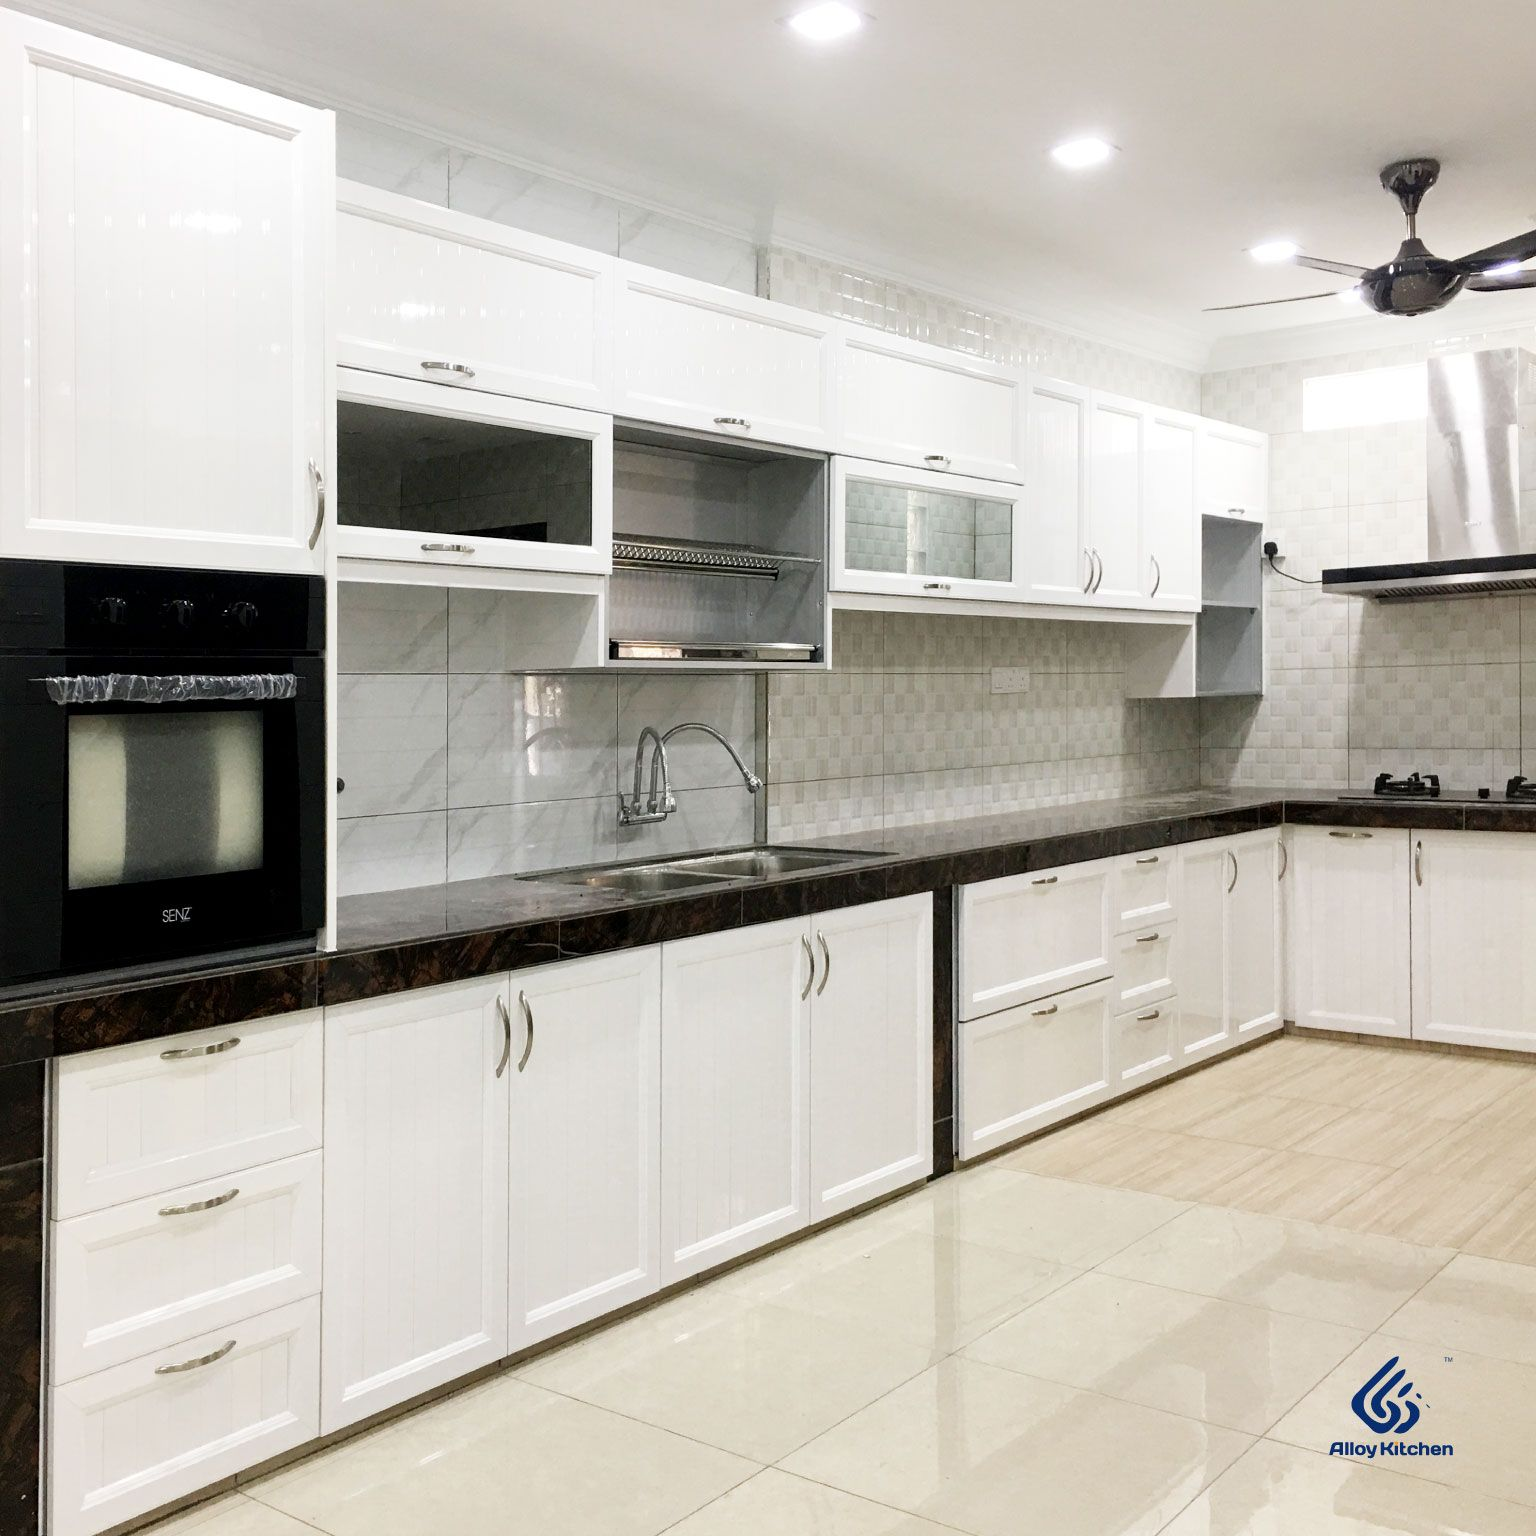 Alloy Kitchen Aluminium Woodgrain Series Kitchen Cabinet Aluminium Kitchen Aluminum Kitchen Cabinets Kitchen Cabinets